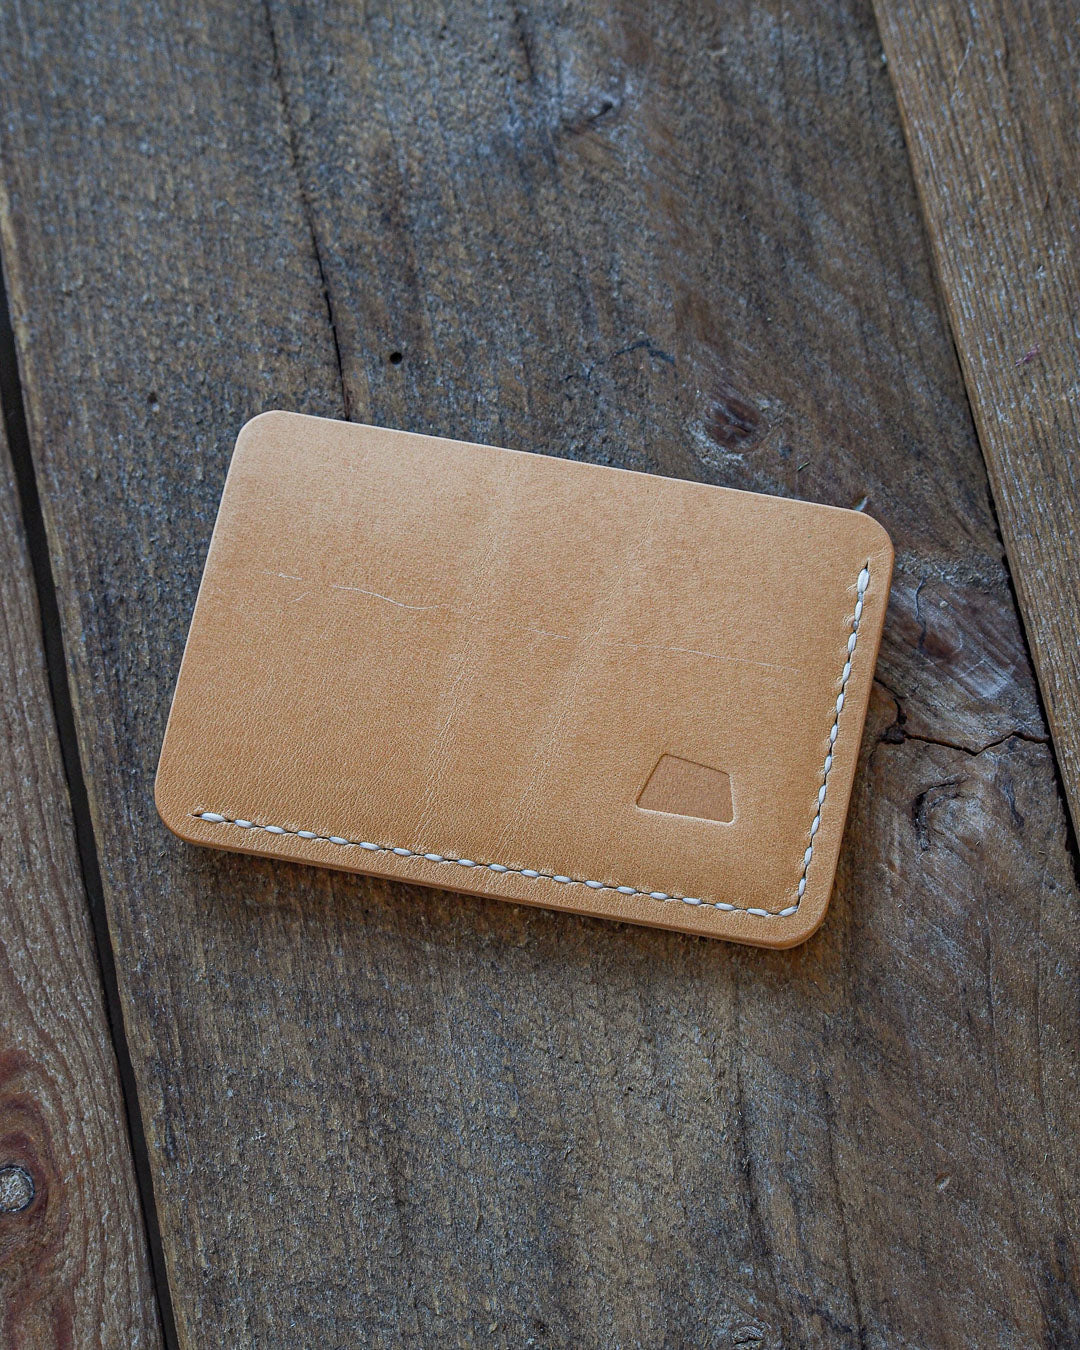 Luava handcrafted handmade leather wallet card holder cardholder maremma nude back